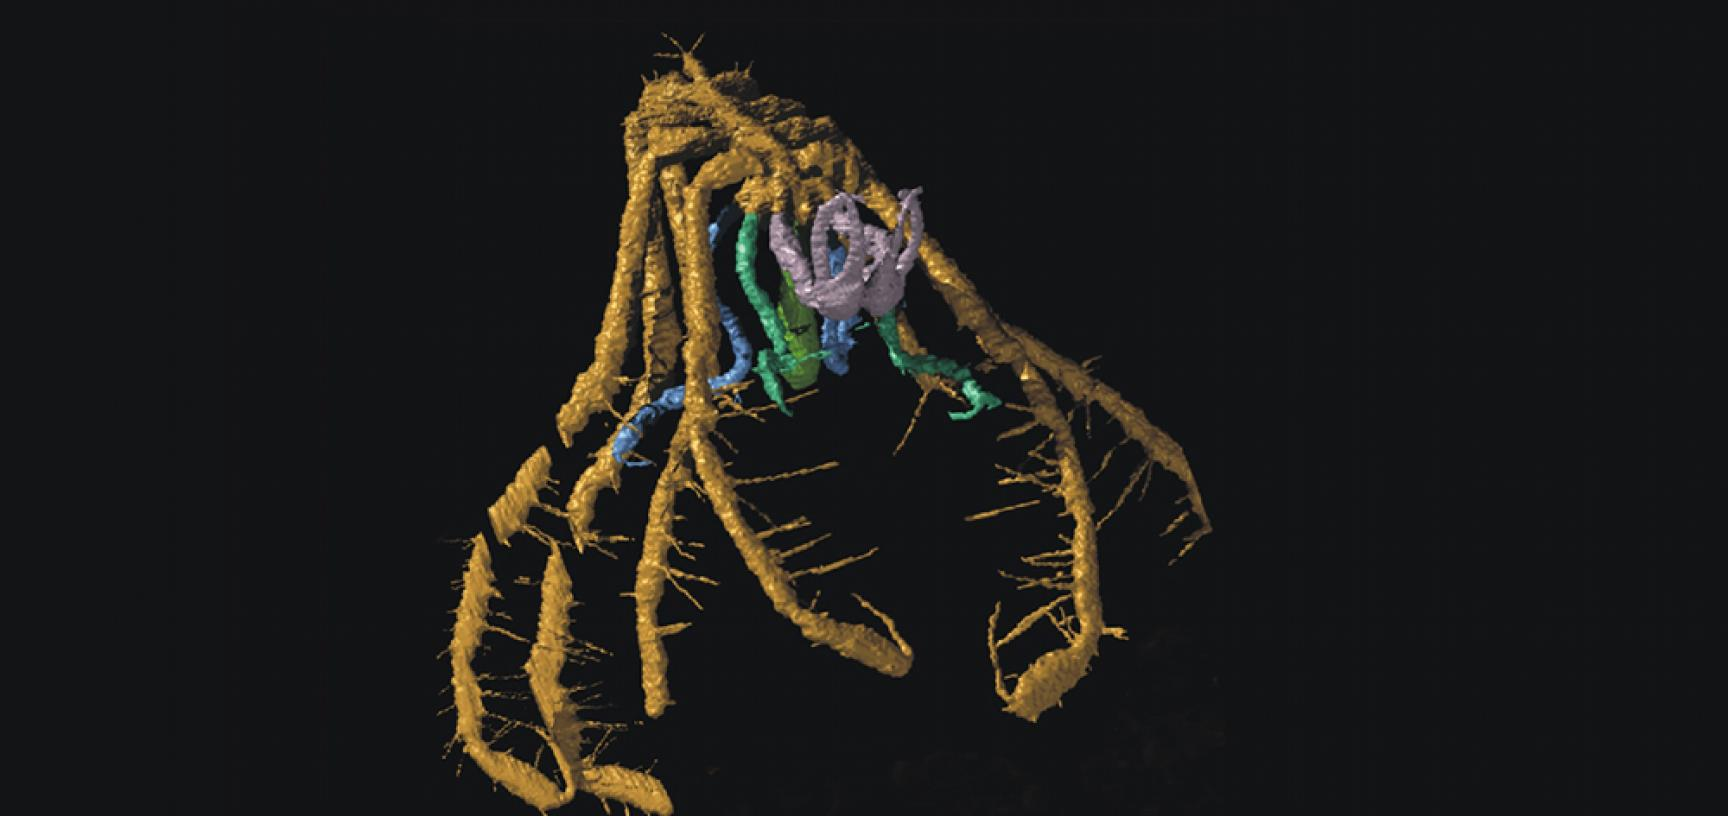 A fossil sea spider, pycnogonid arthropod, from the Silurian of Herefordshire, UK